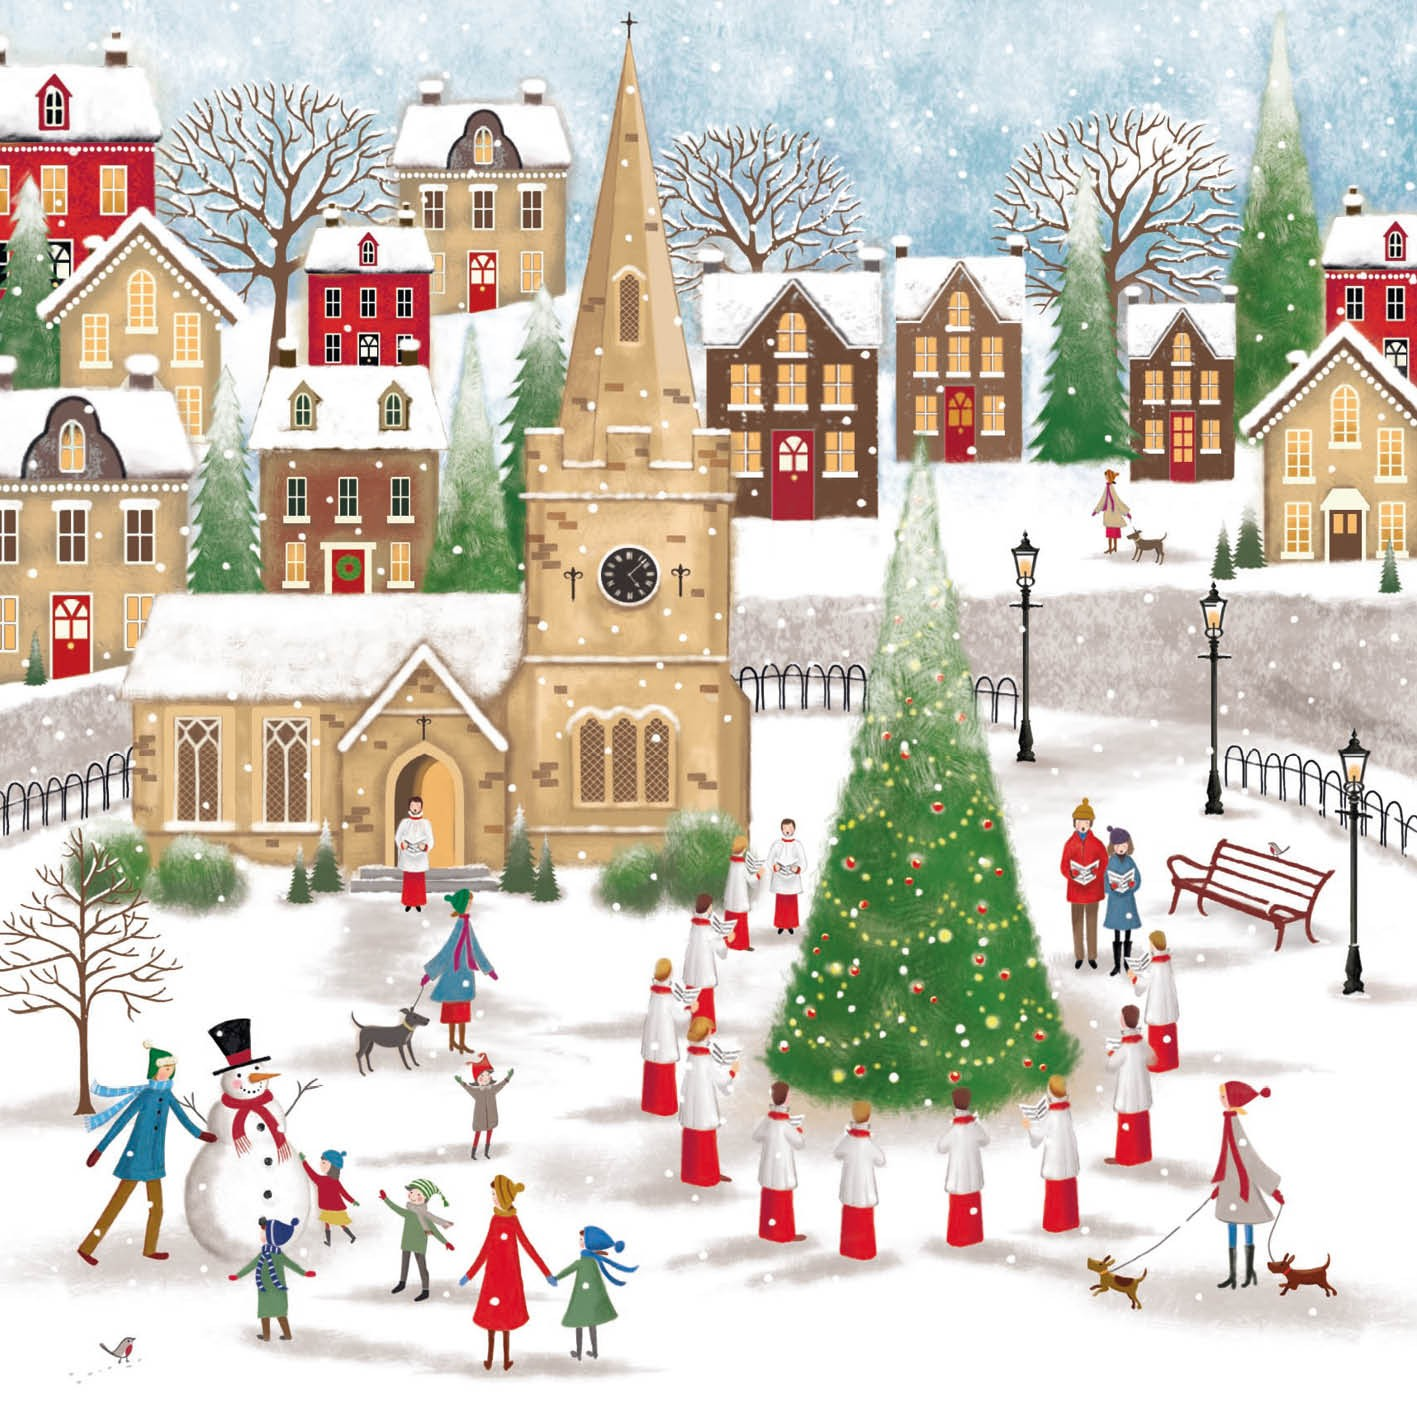 Church Square Christmas Card Charity Cards